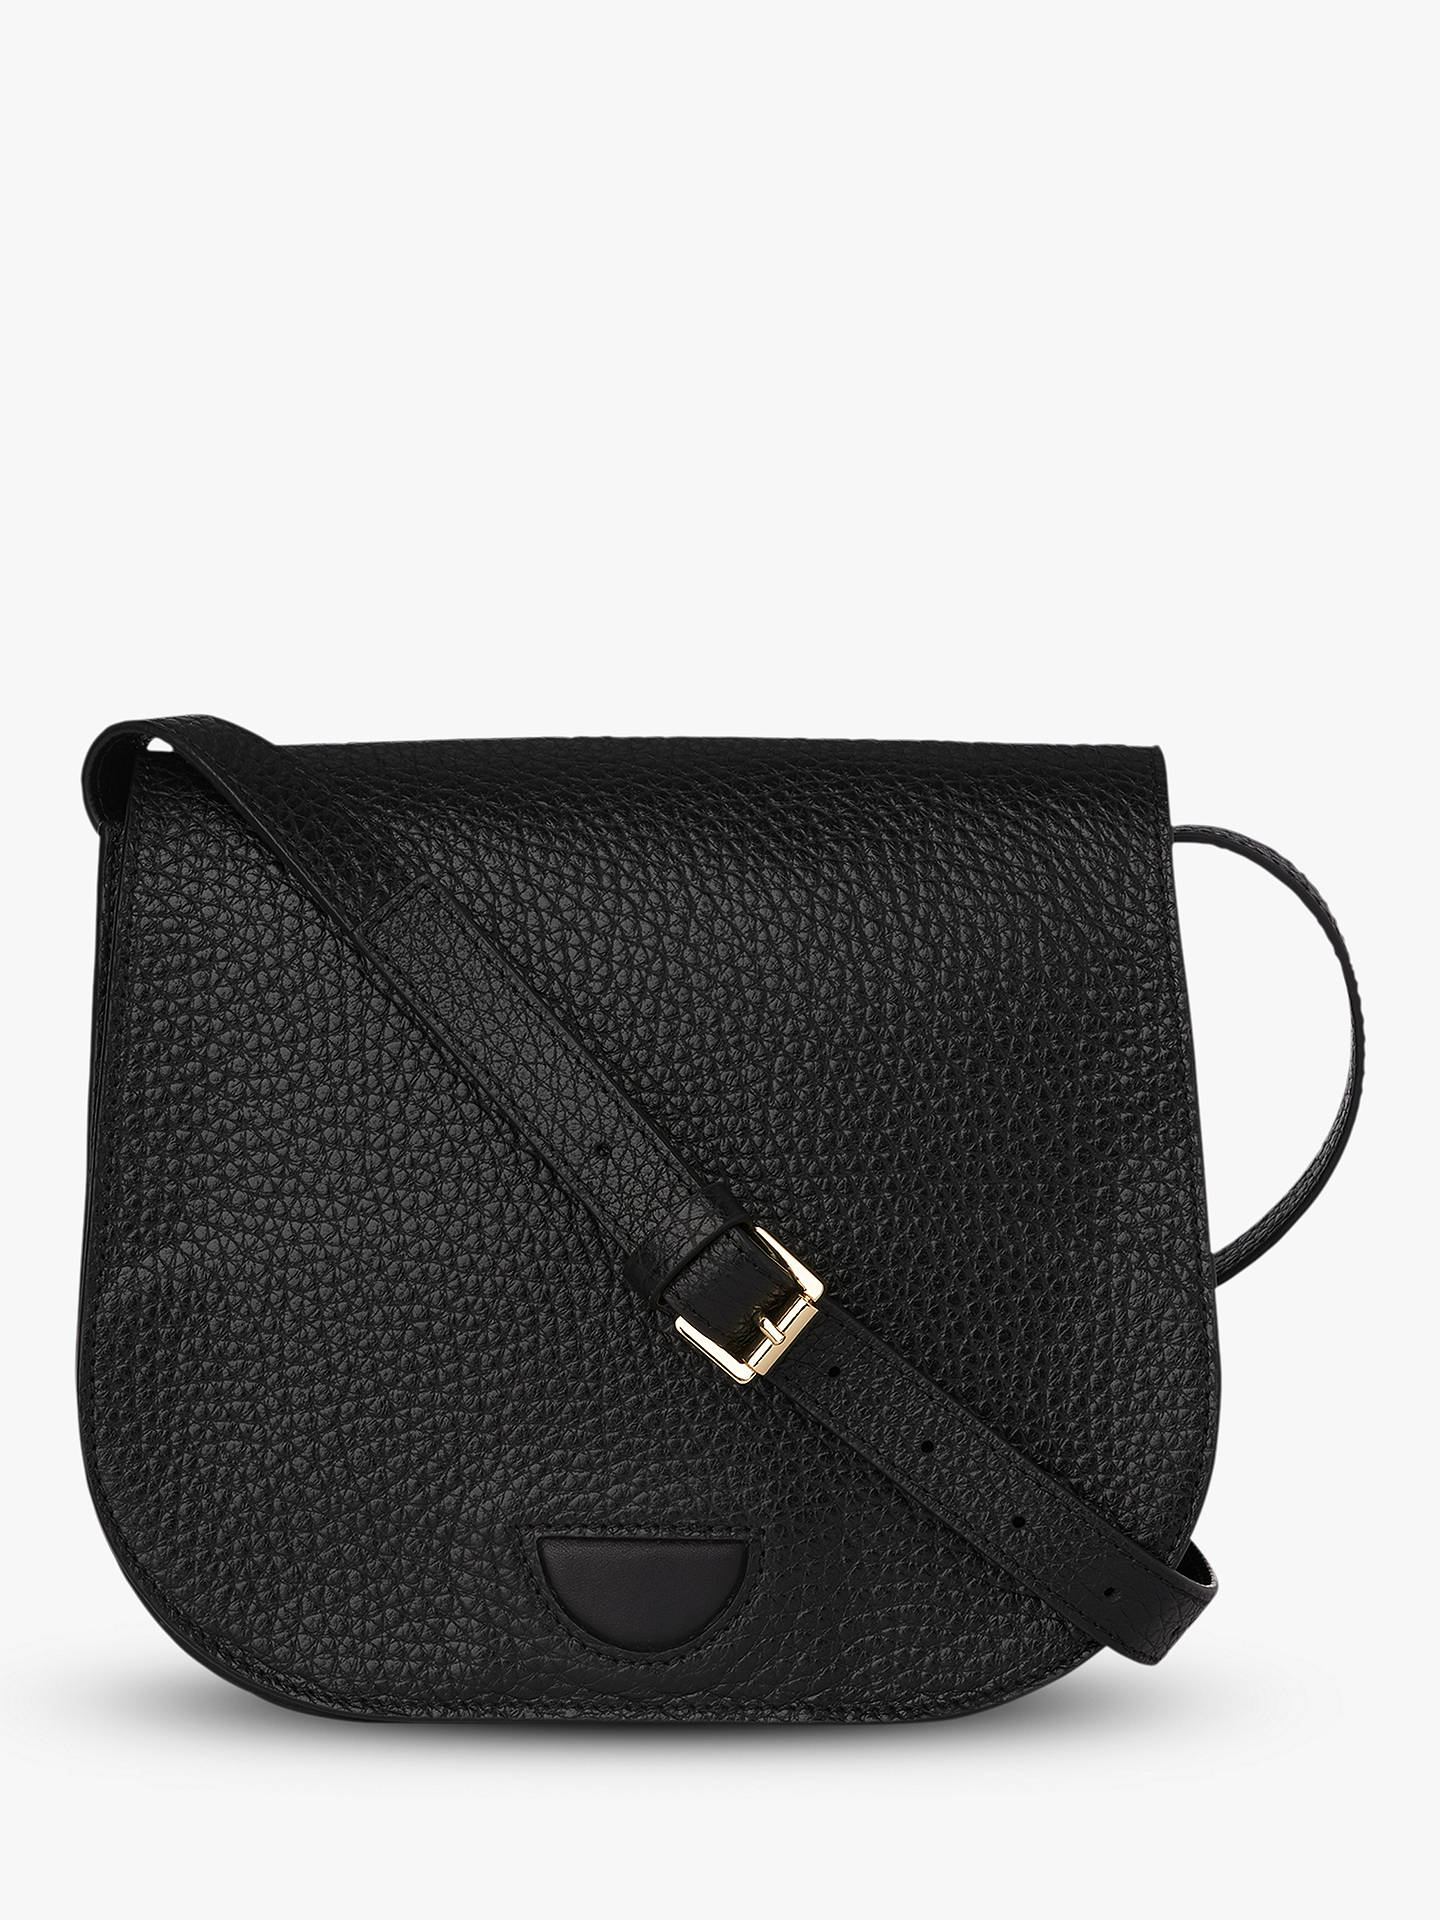 Whistles Exeter Leather Saddle Bag Black Online At Johnlewis